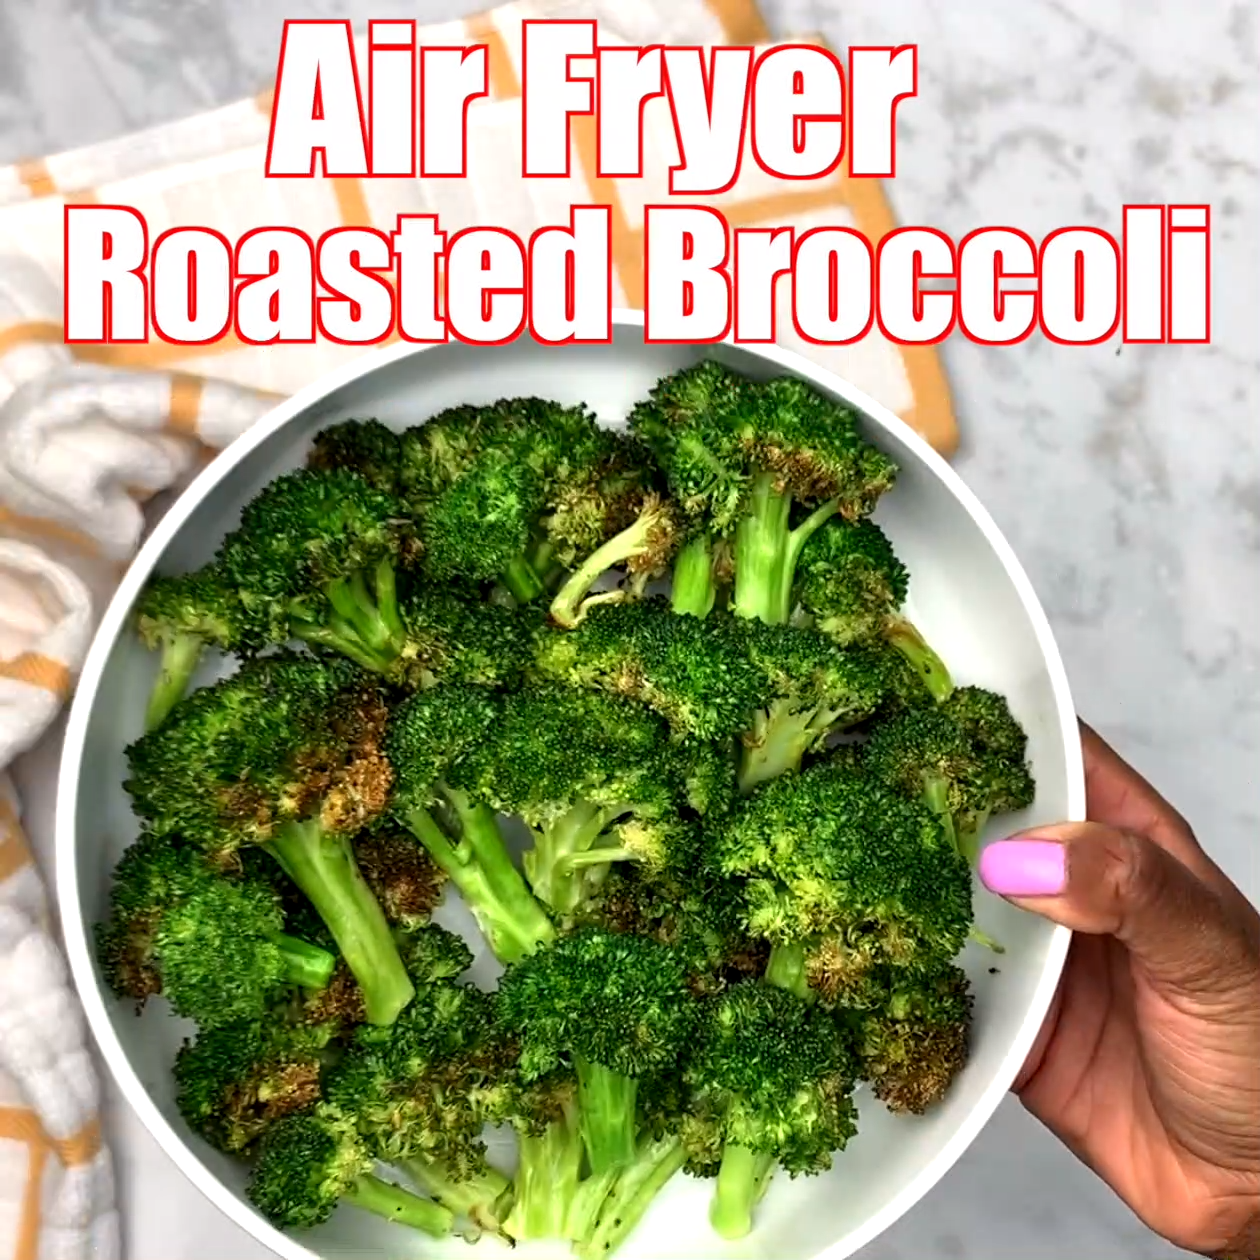 Easy Air Fryer Roasted Broccoli + Cooking VIDEO is part of Air fryer recipes keto - Easy Air Fryer Roasted Broccoli is a quick vegetarian, vegan, and glutenfree recipe that outlines how long to cook and roast broccoli in an air fryer  The cook time and temperature is illustrated along with tips on how to use frozen broccoli  This dish is also lowcarb and ketofriendly  Toss with parmesan cheese if you wish!